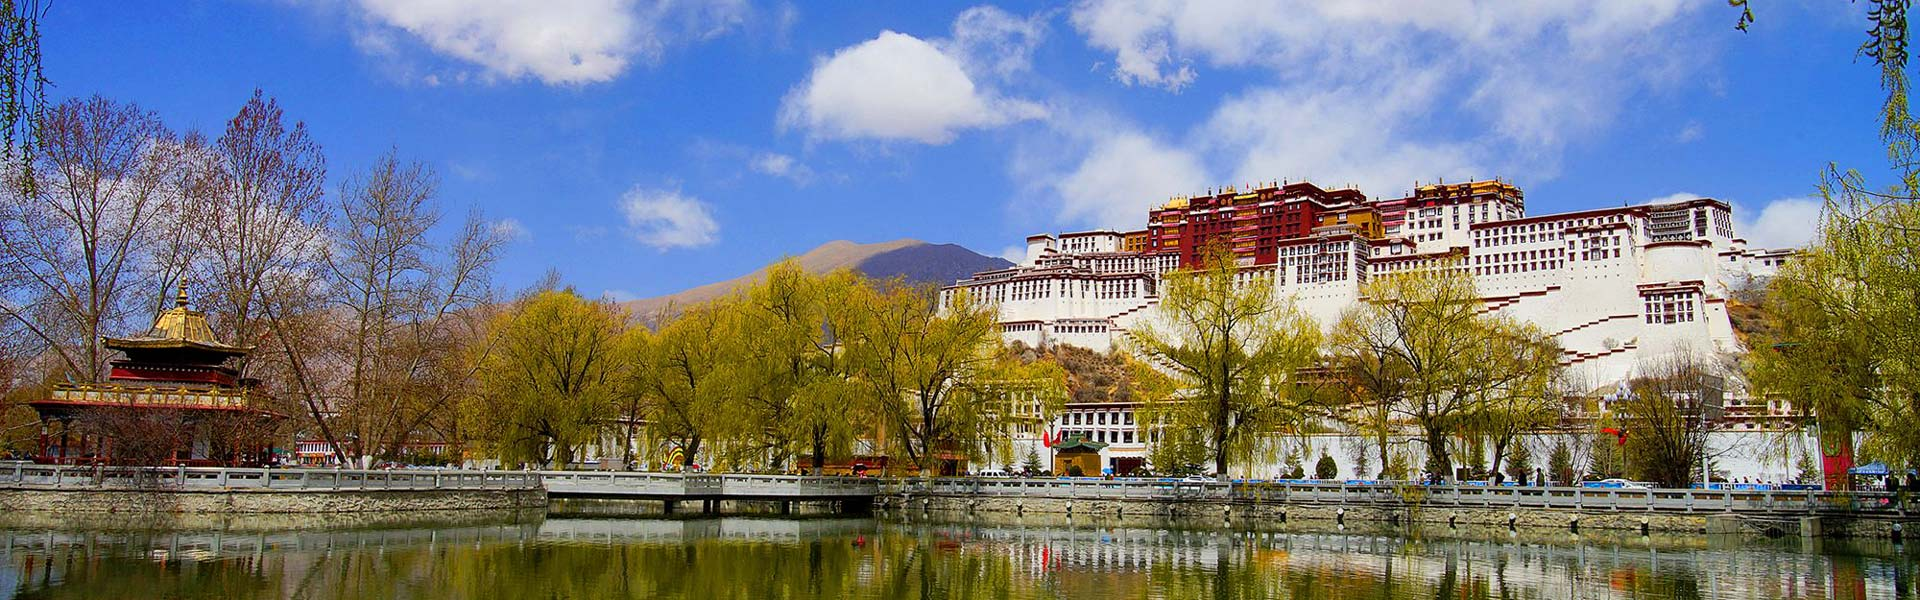 14 Days Group Tour Beijing-Xian-Lhasa-Yangtze Cruise-Shanghai